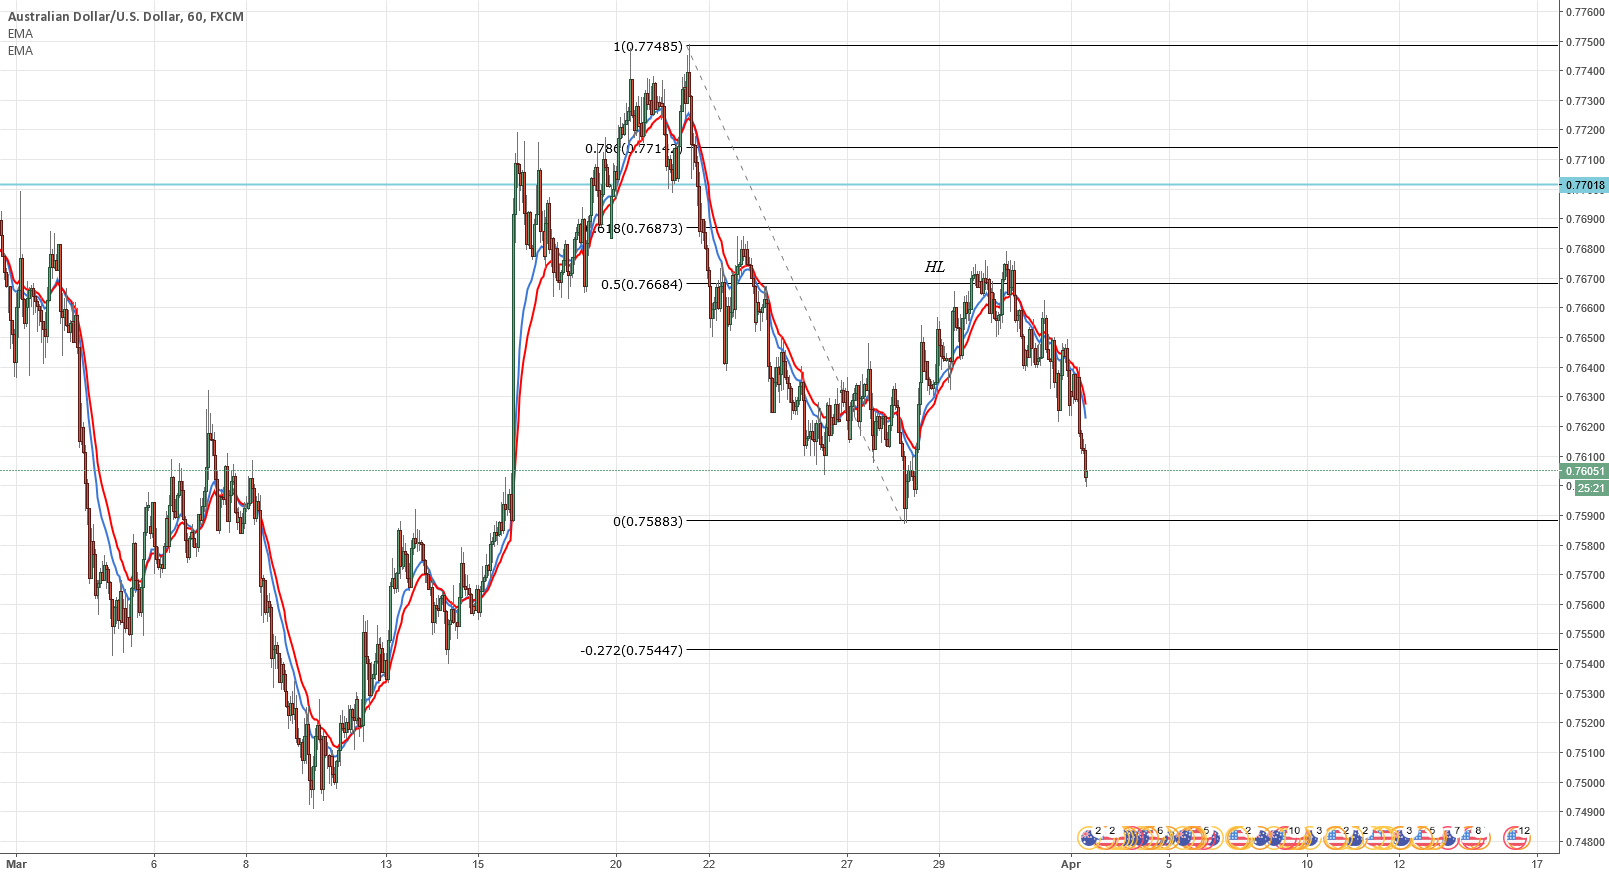 AUDUSD still short